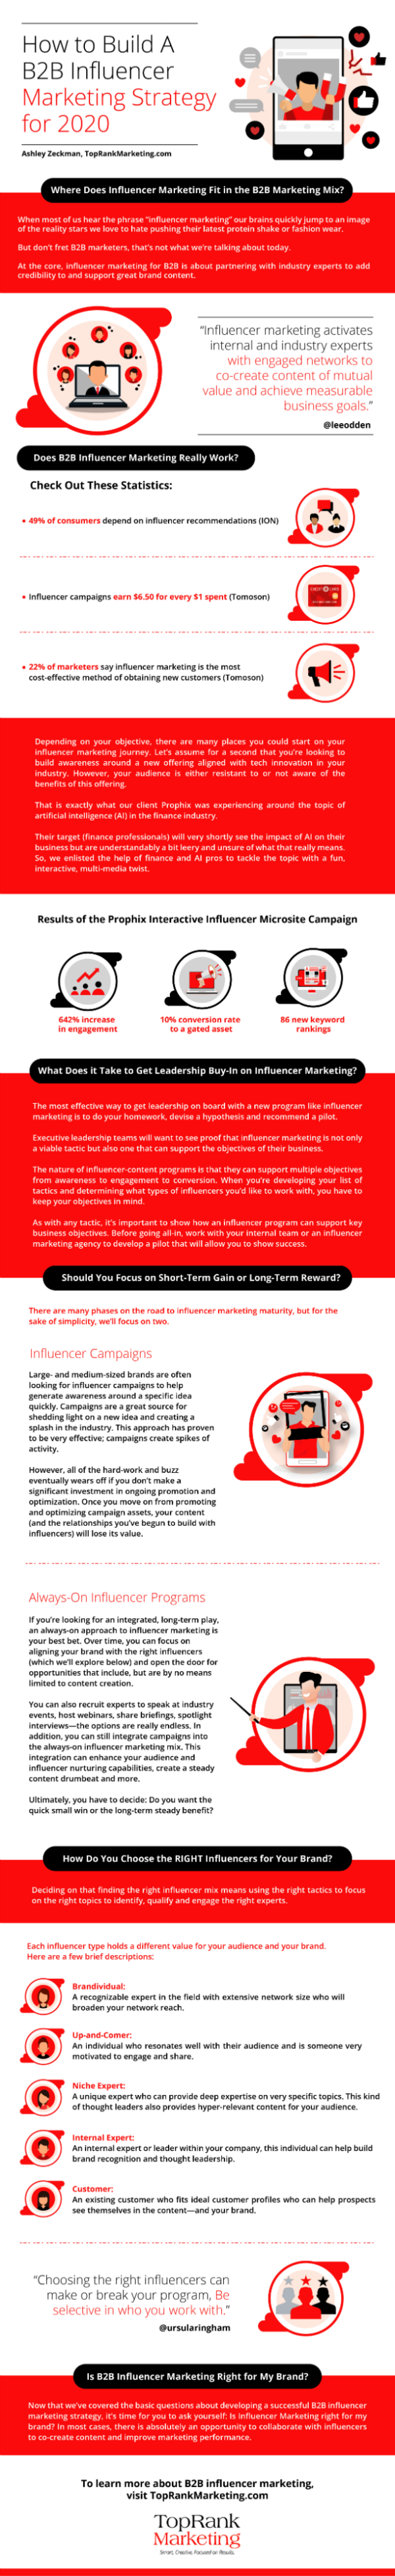 Infographic B2B Influencer Marketing